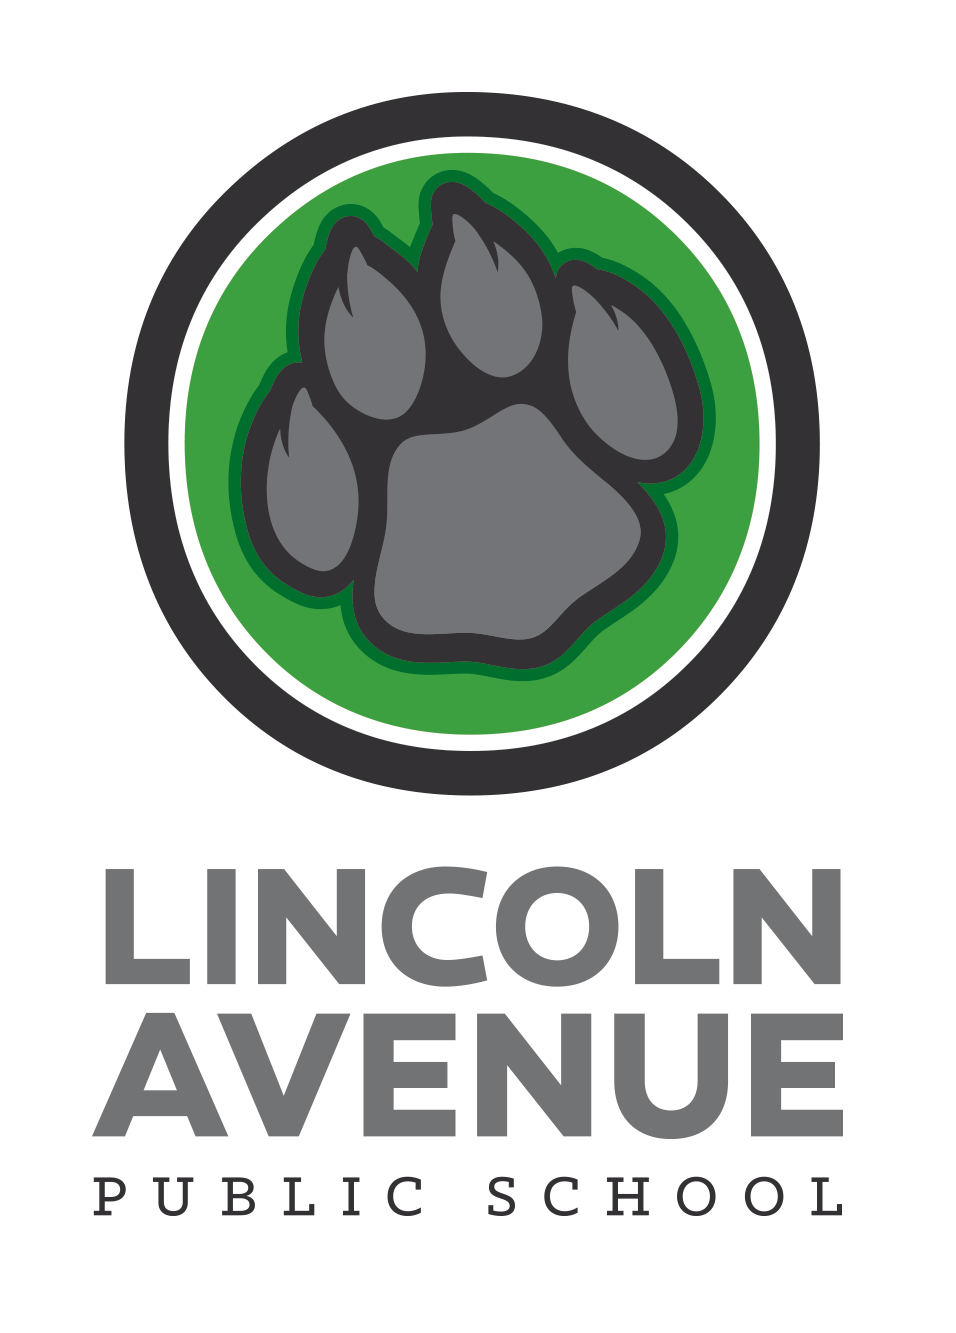 Lincoln Avenue Public School logo